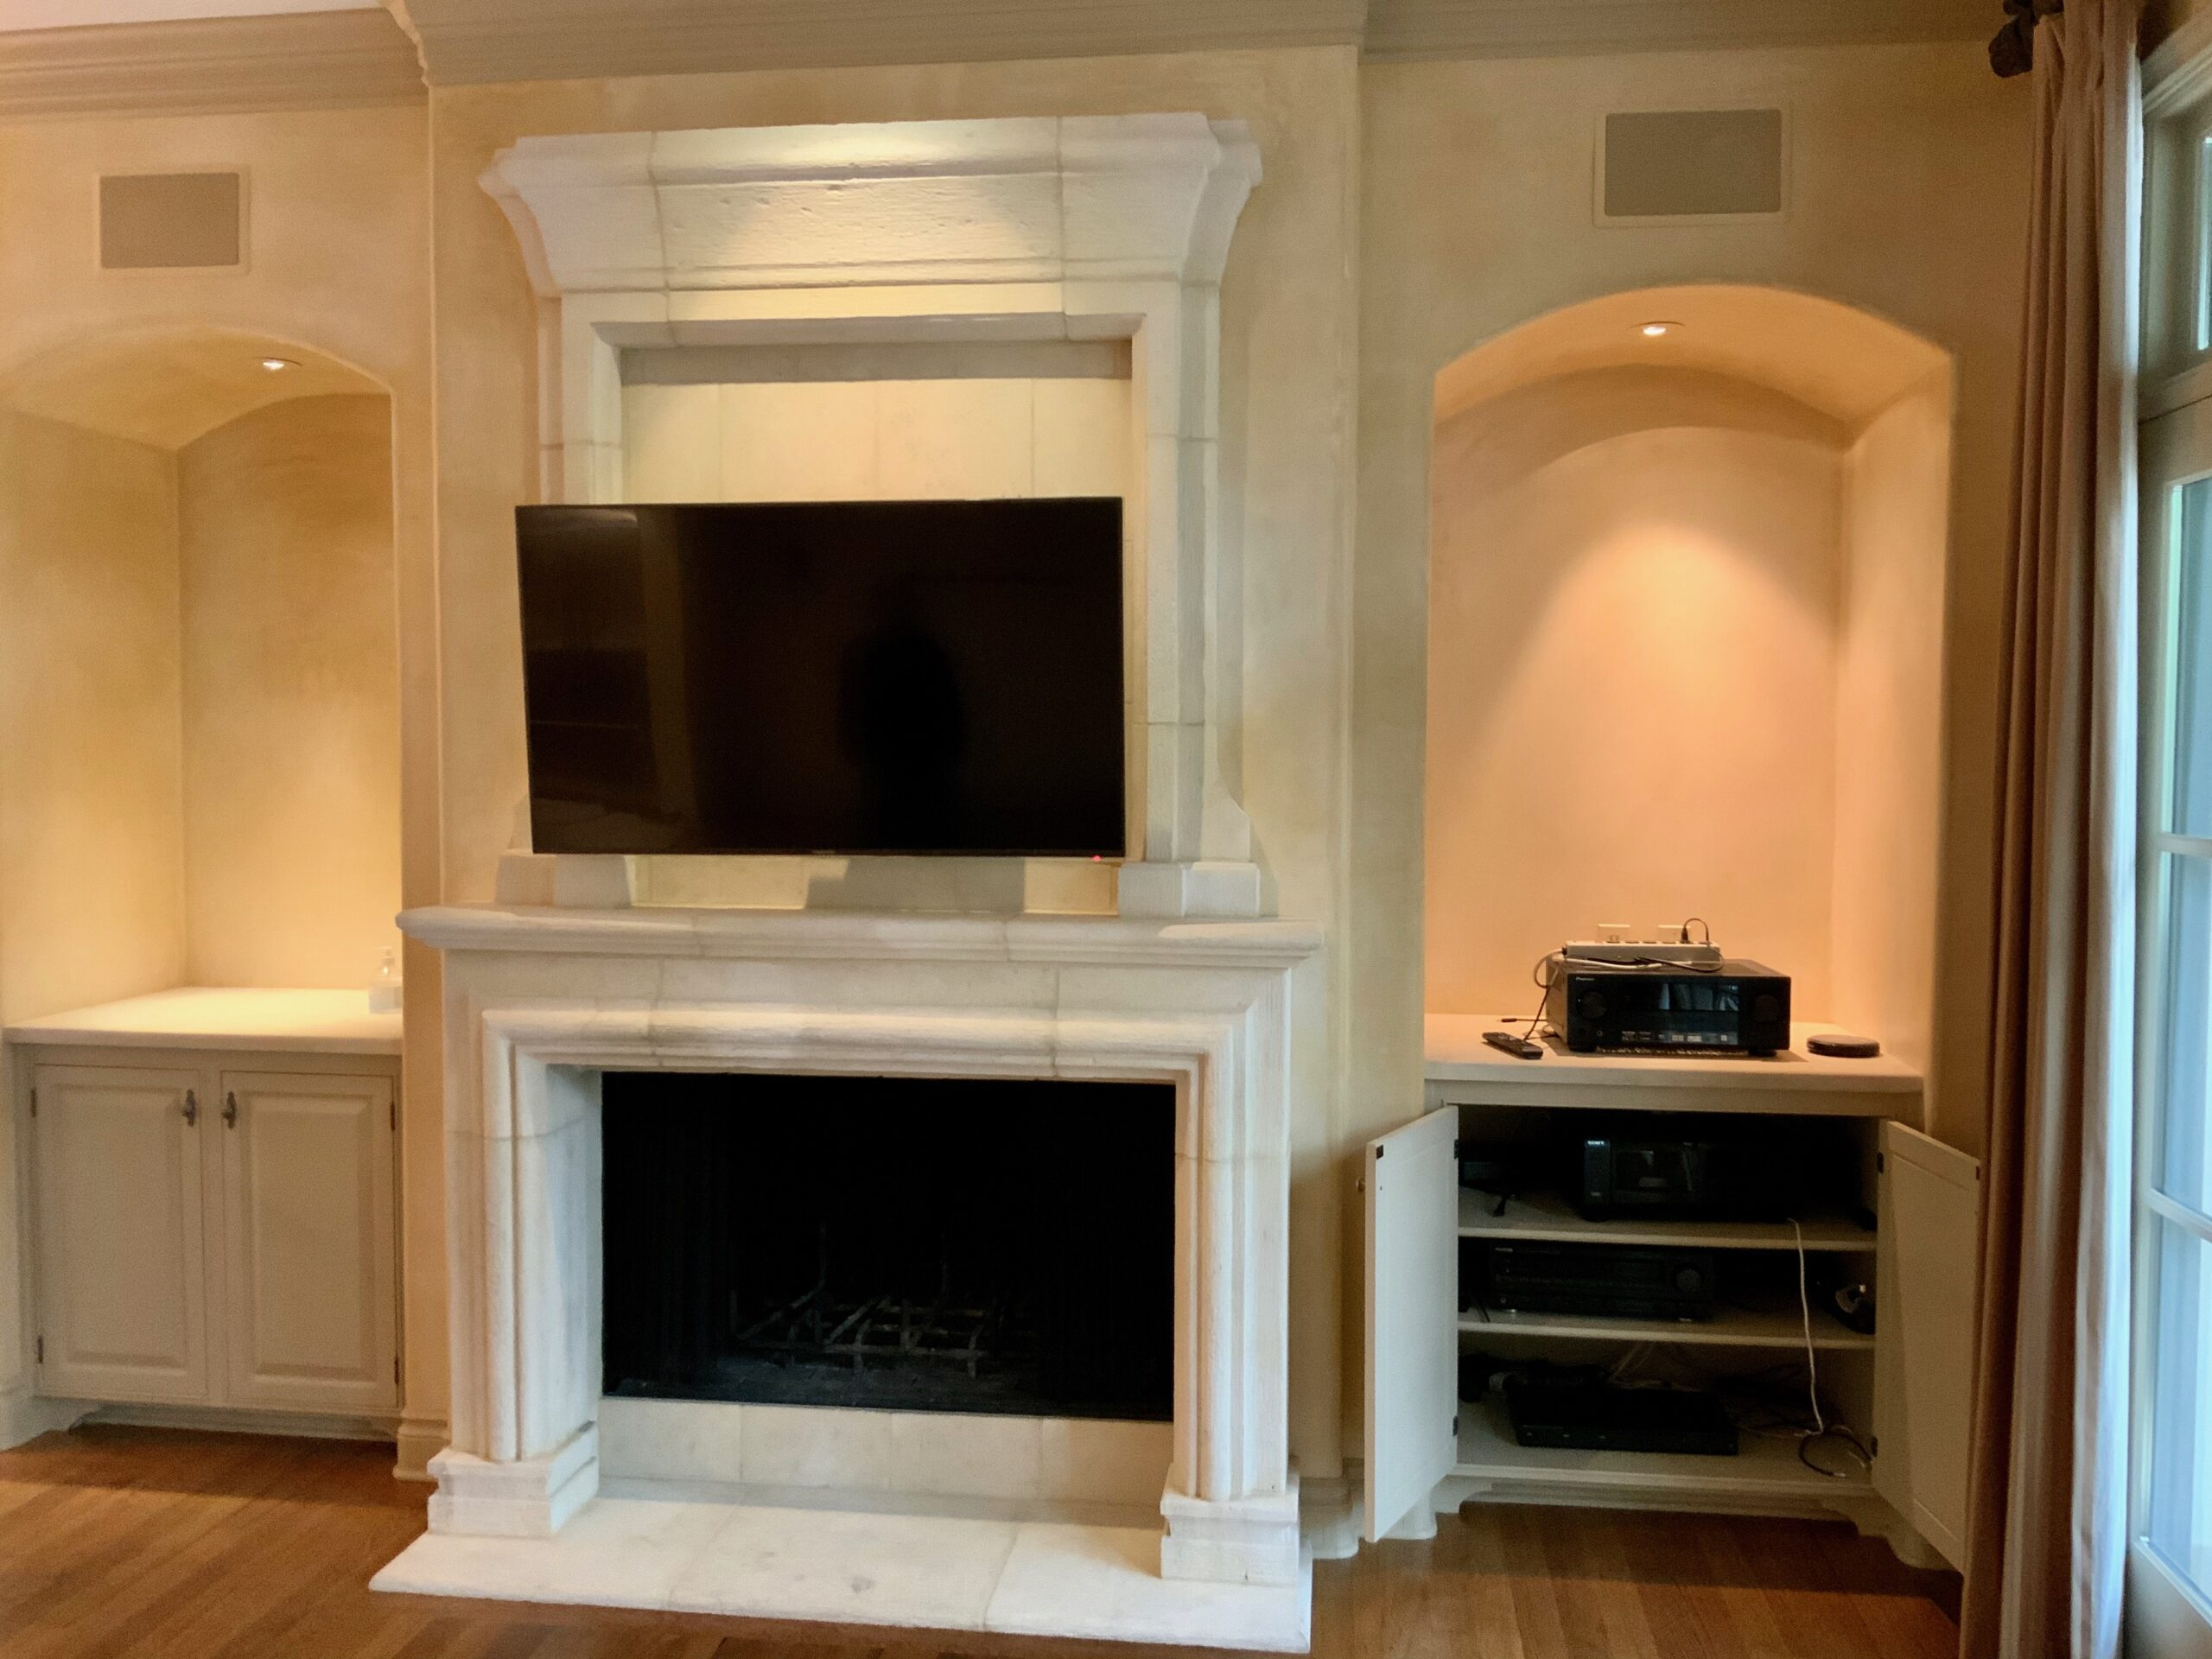 Fireplace TV mounted above with integrated surround sound system